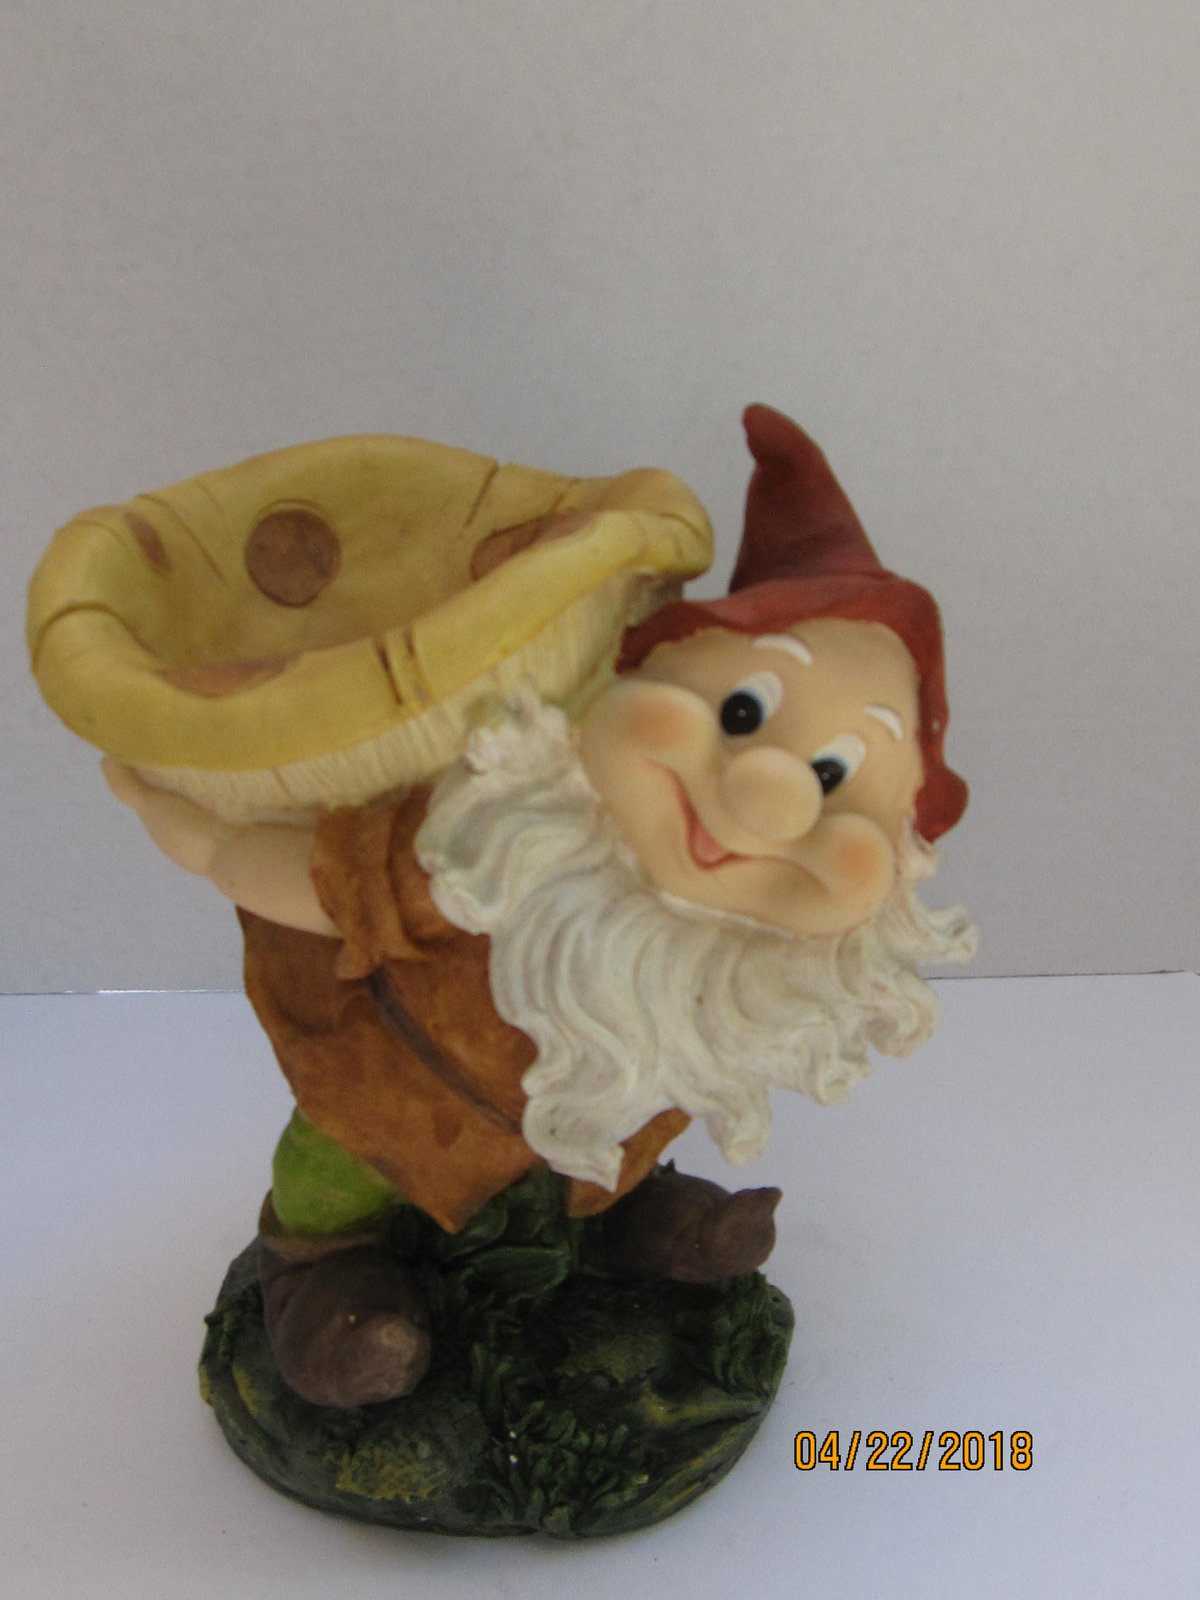 Garden Gnome Mushroom Candy Holder and 43 similar items